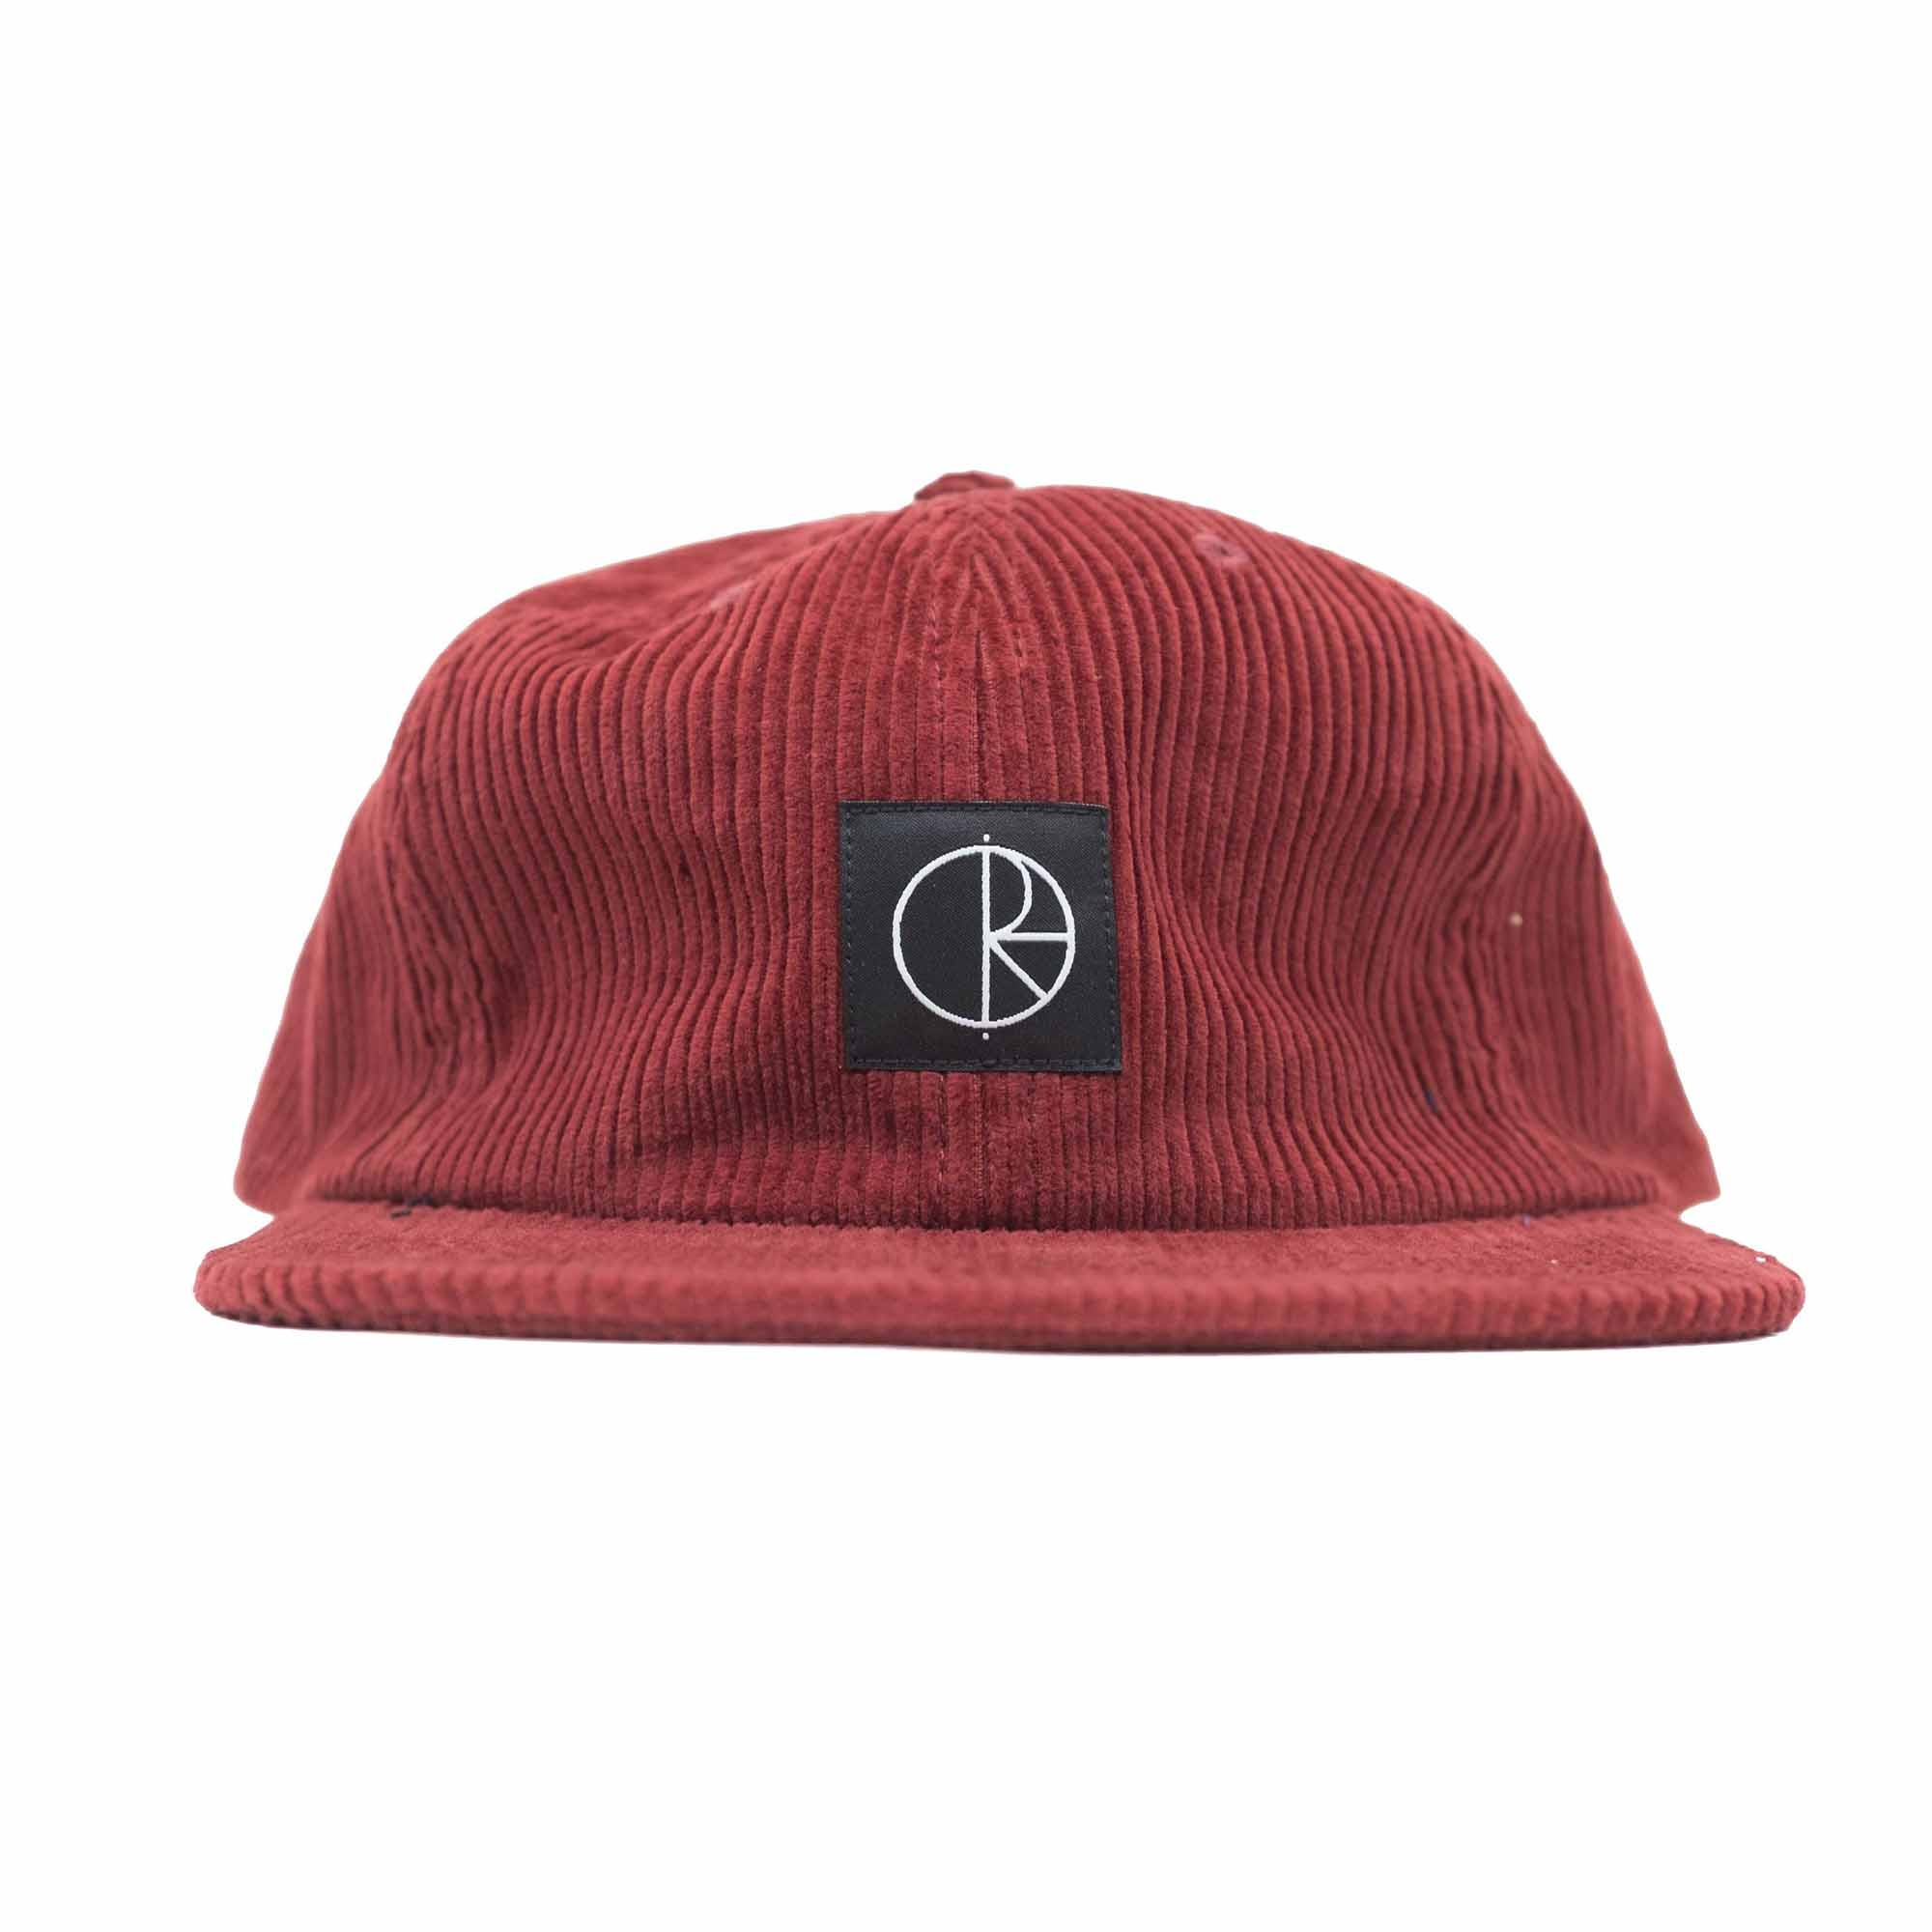 Polar Skate Co. Corduroy Cap - Red